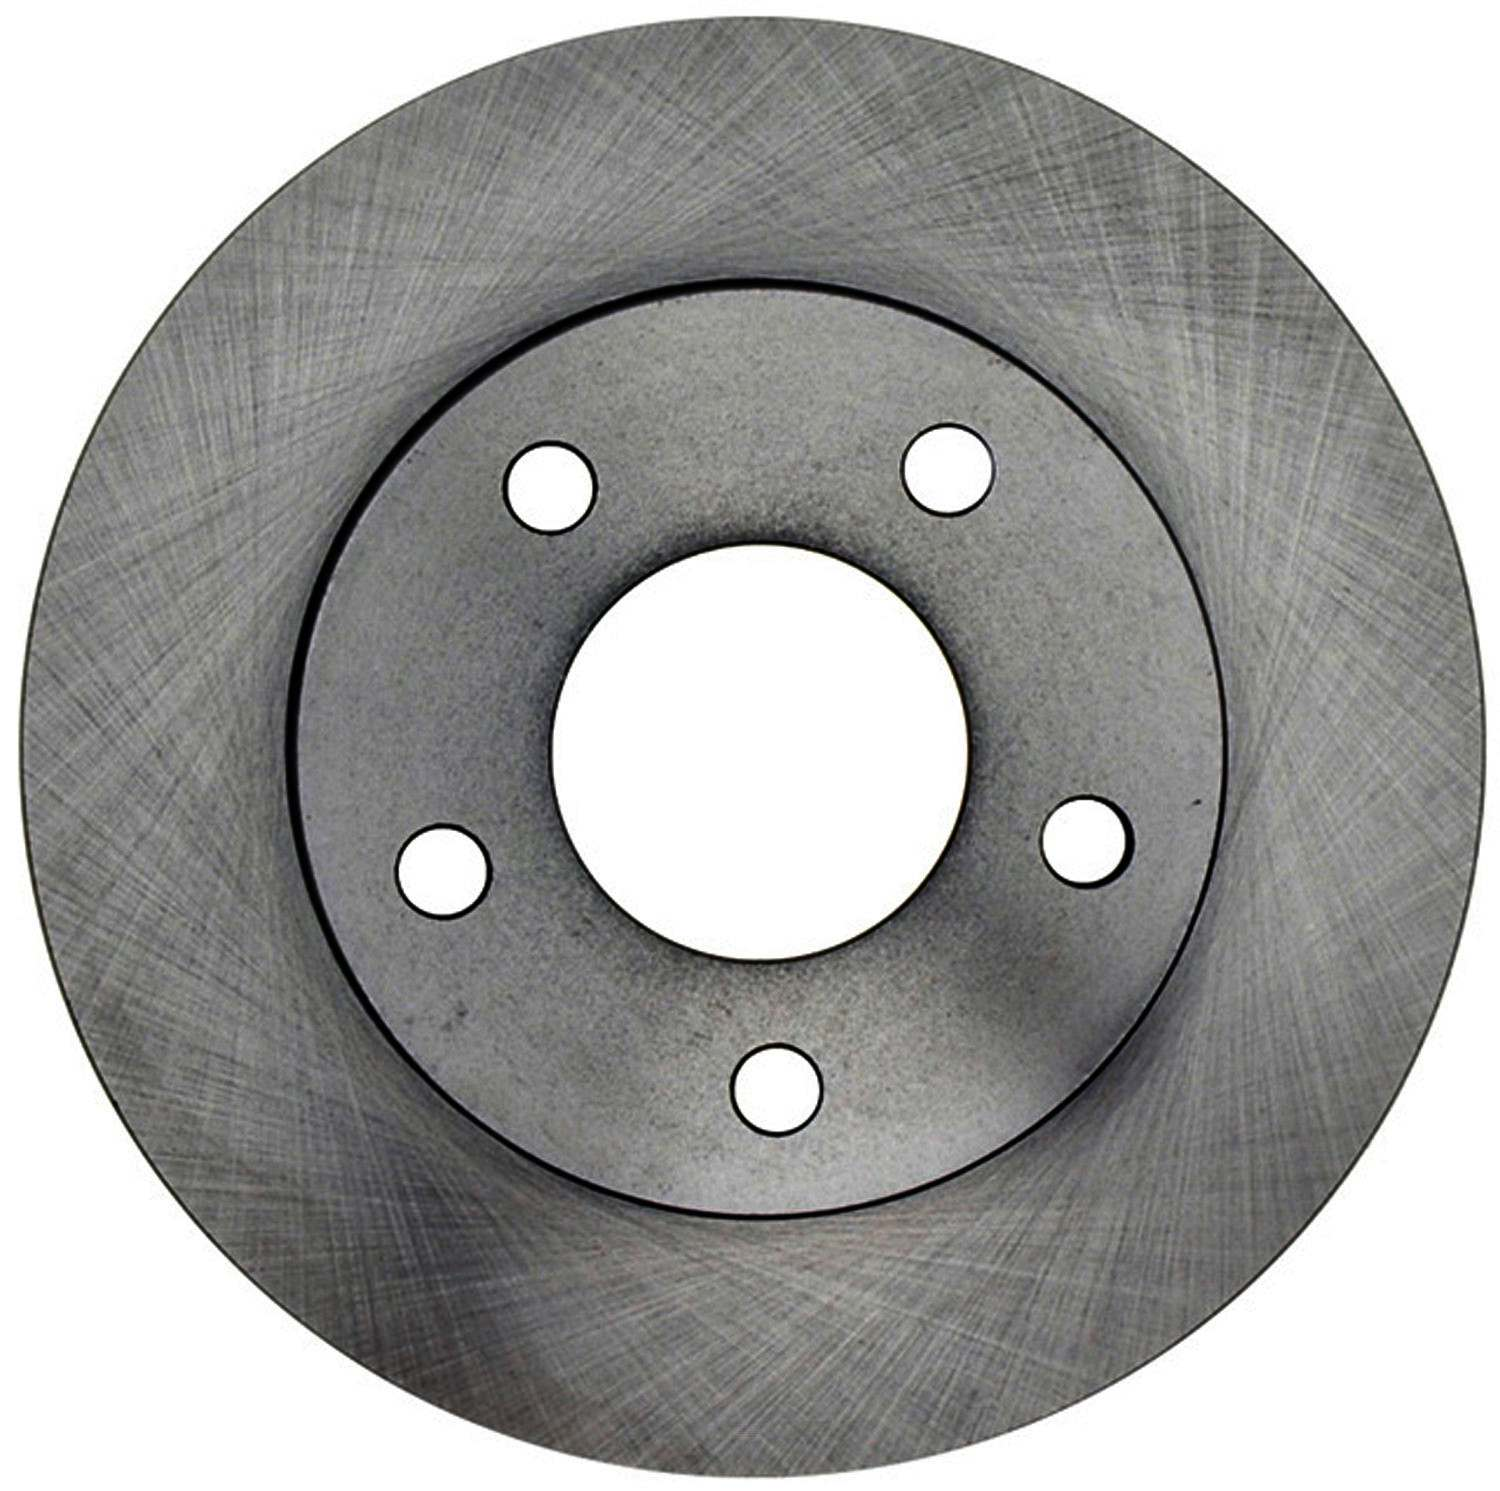 ACDELCO ADVANTAGE - Non-Coated Disc Brake Rotor - DCD 18A118A